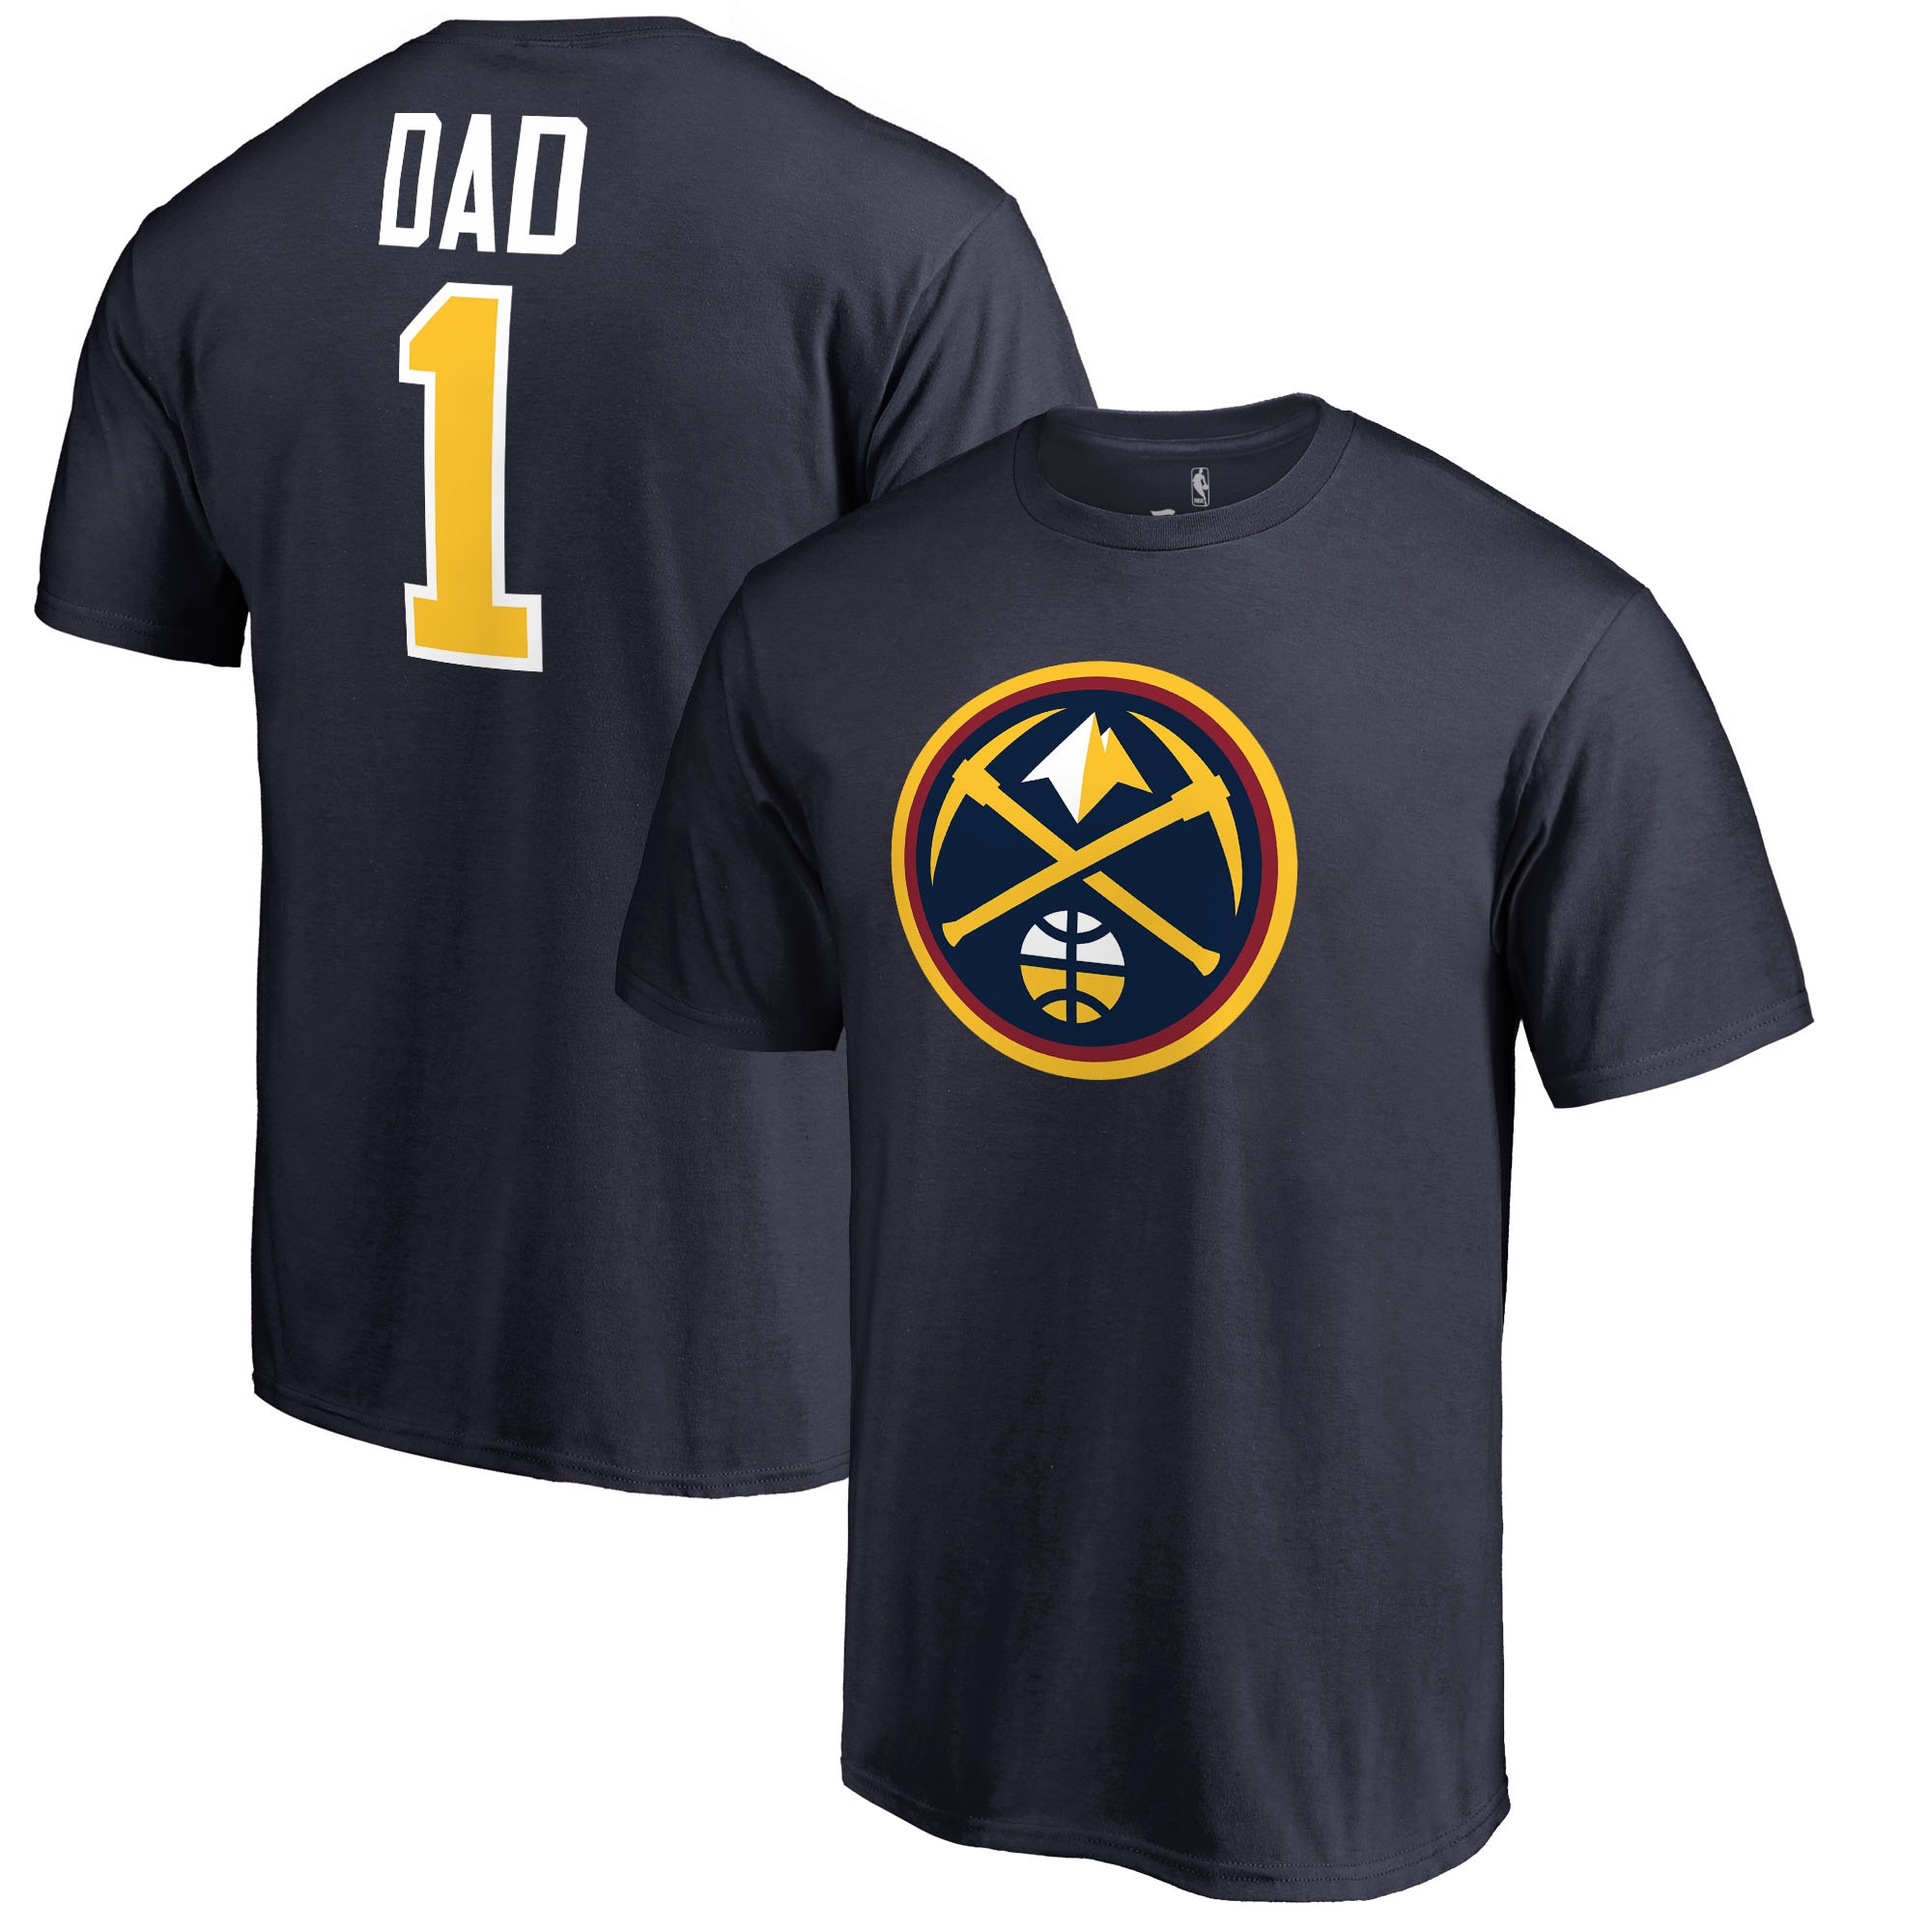 Denver Nuggets #1 Dad T-Shirt - Navy